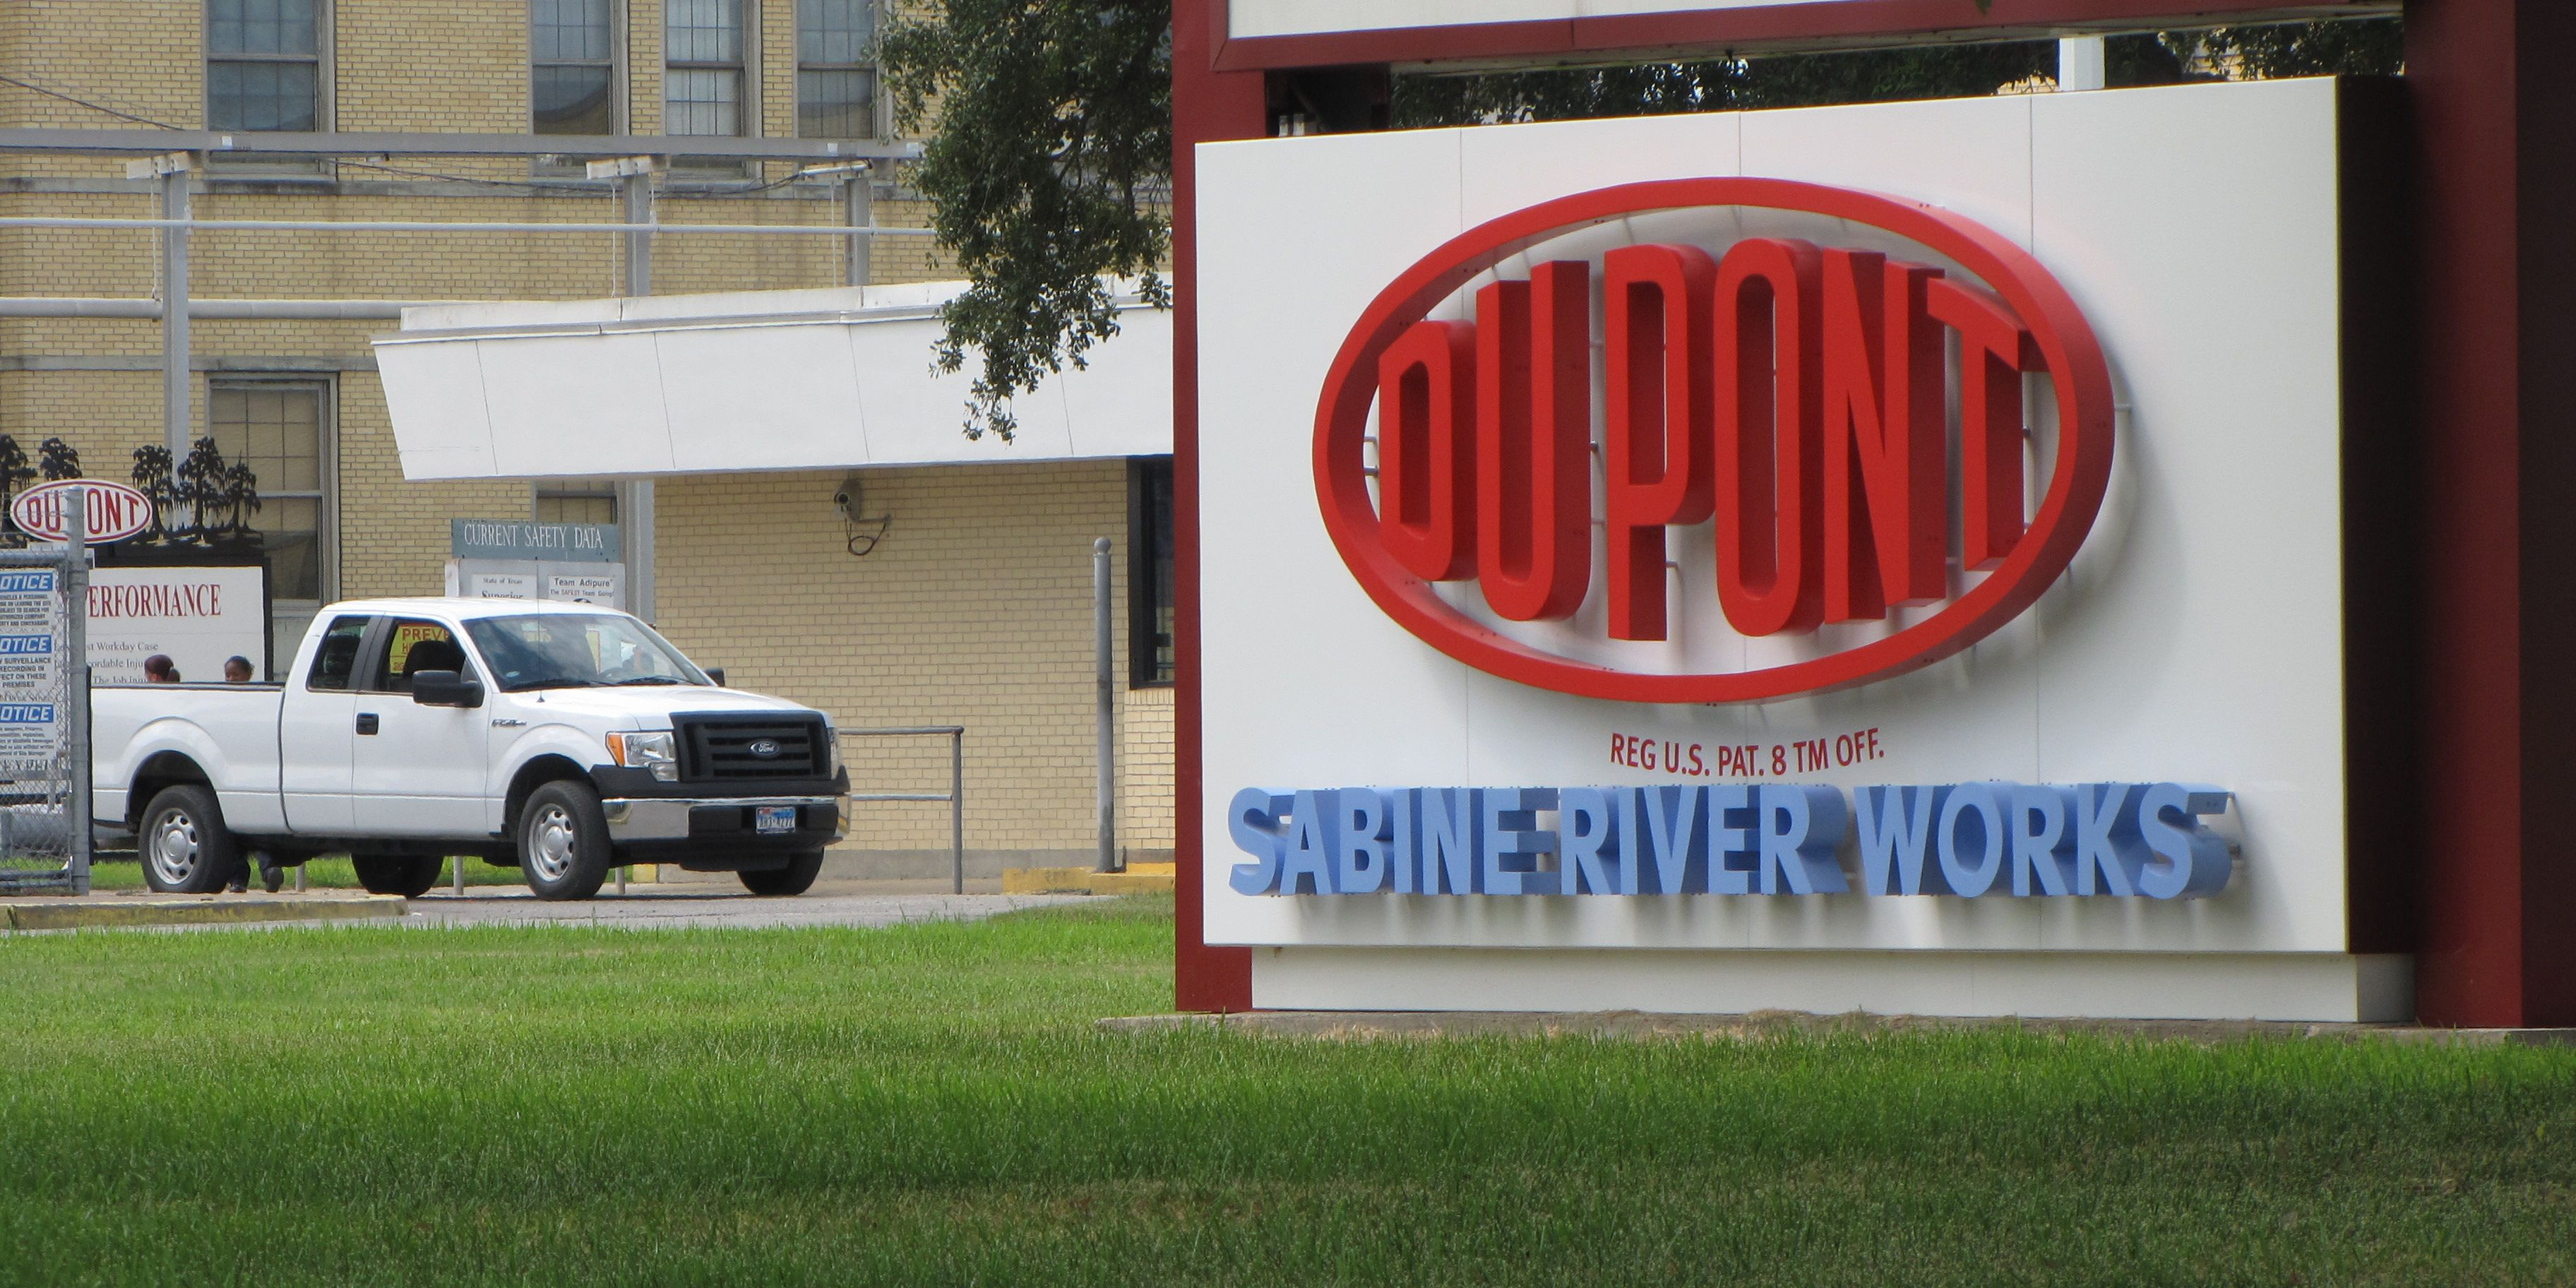 DuPont Sabine River Works site in Orange, Texas